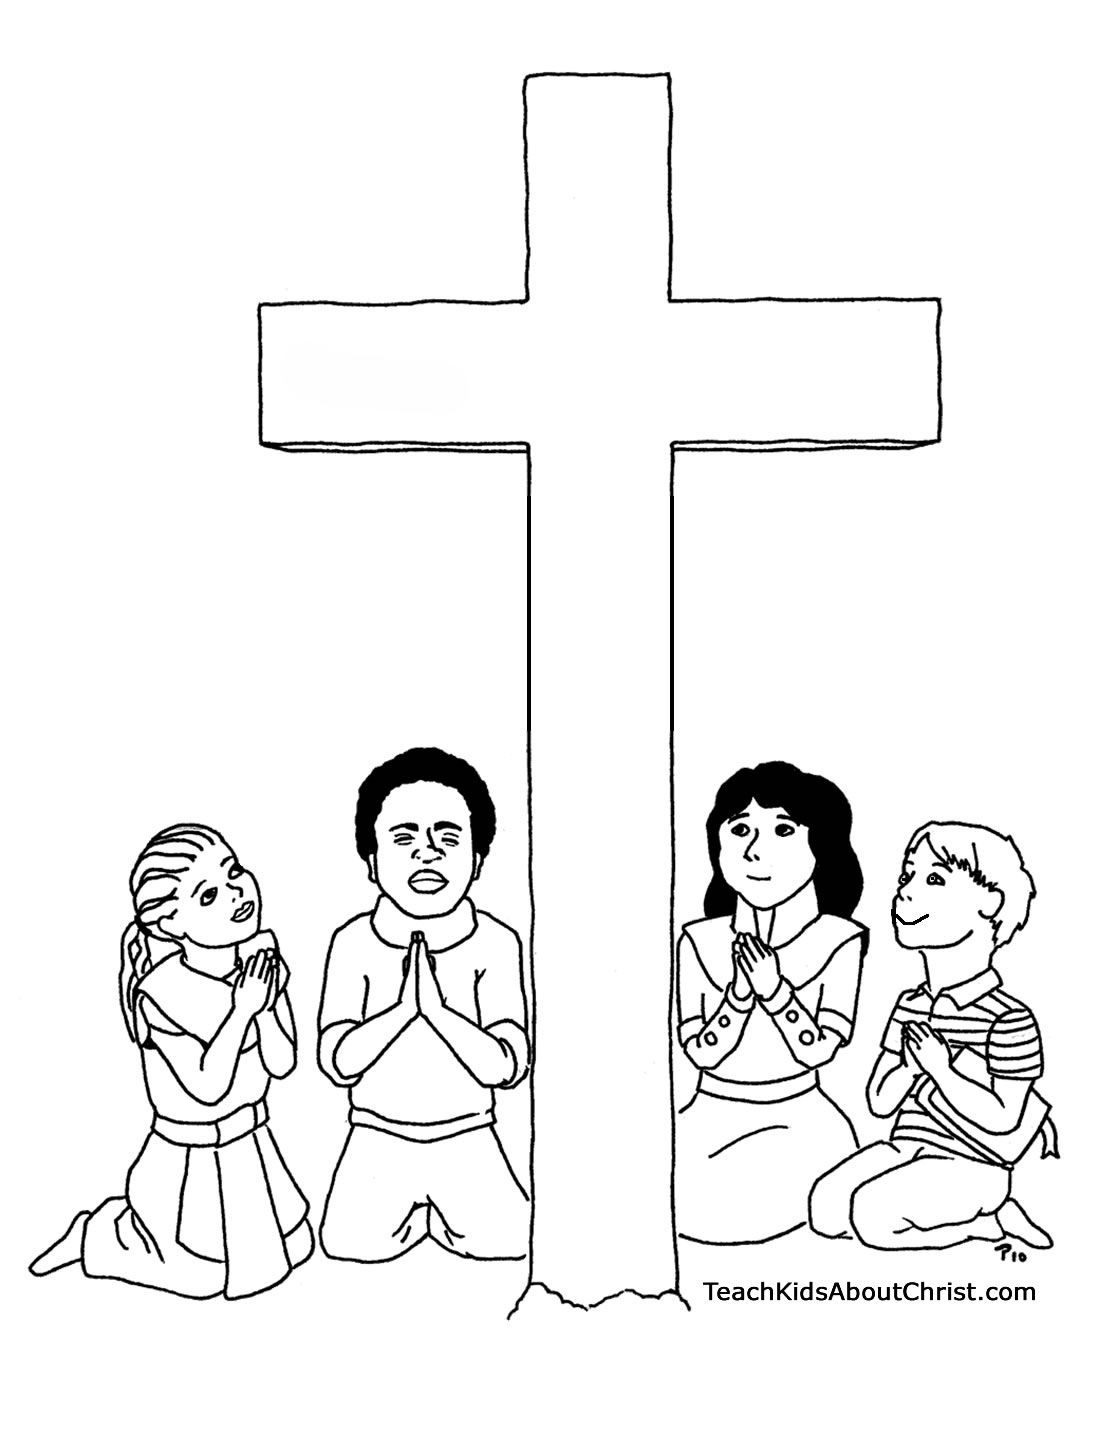 Clip Art Children Praying Coloring Page children praying coloring page az pages with cross teach kids about christ